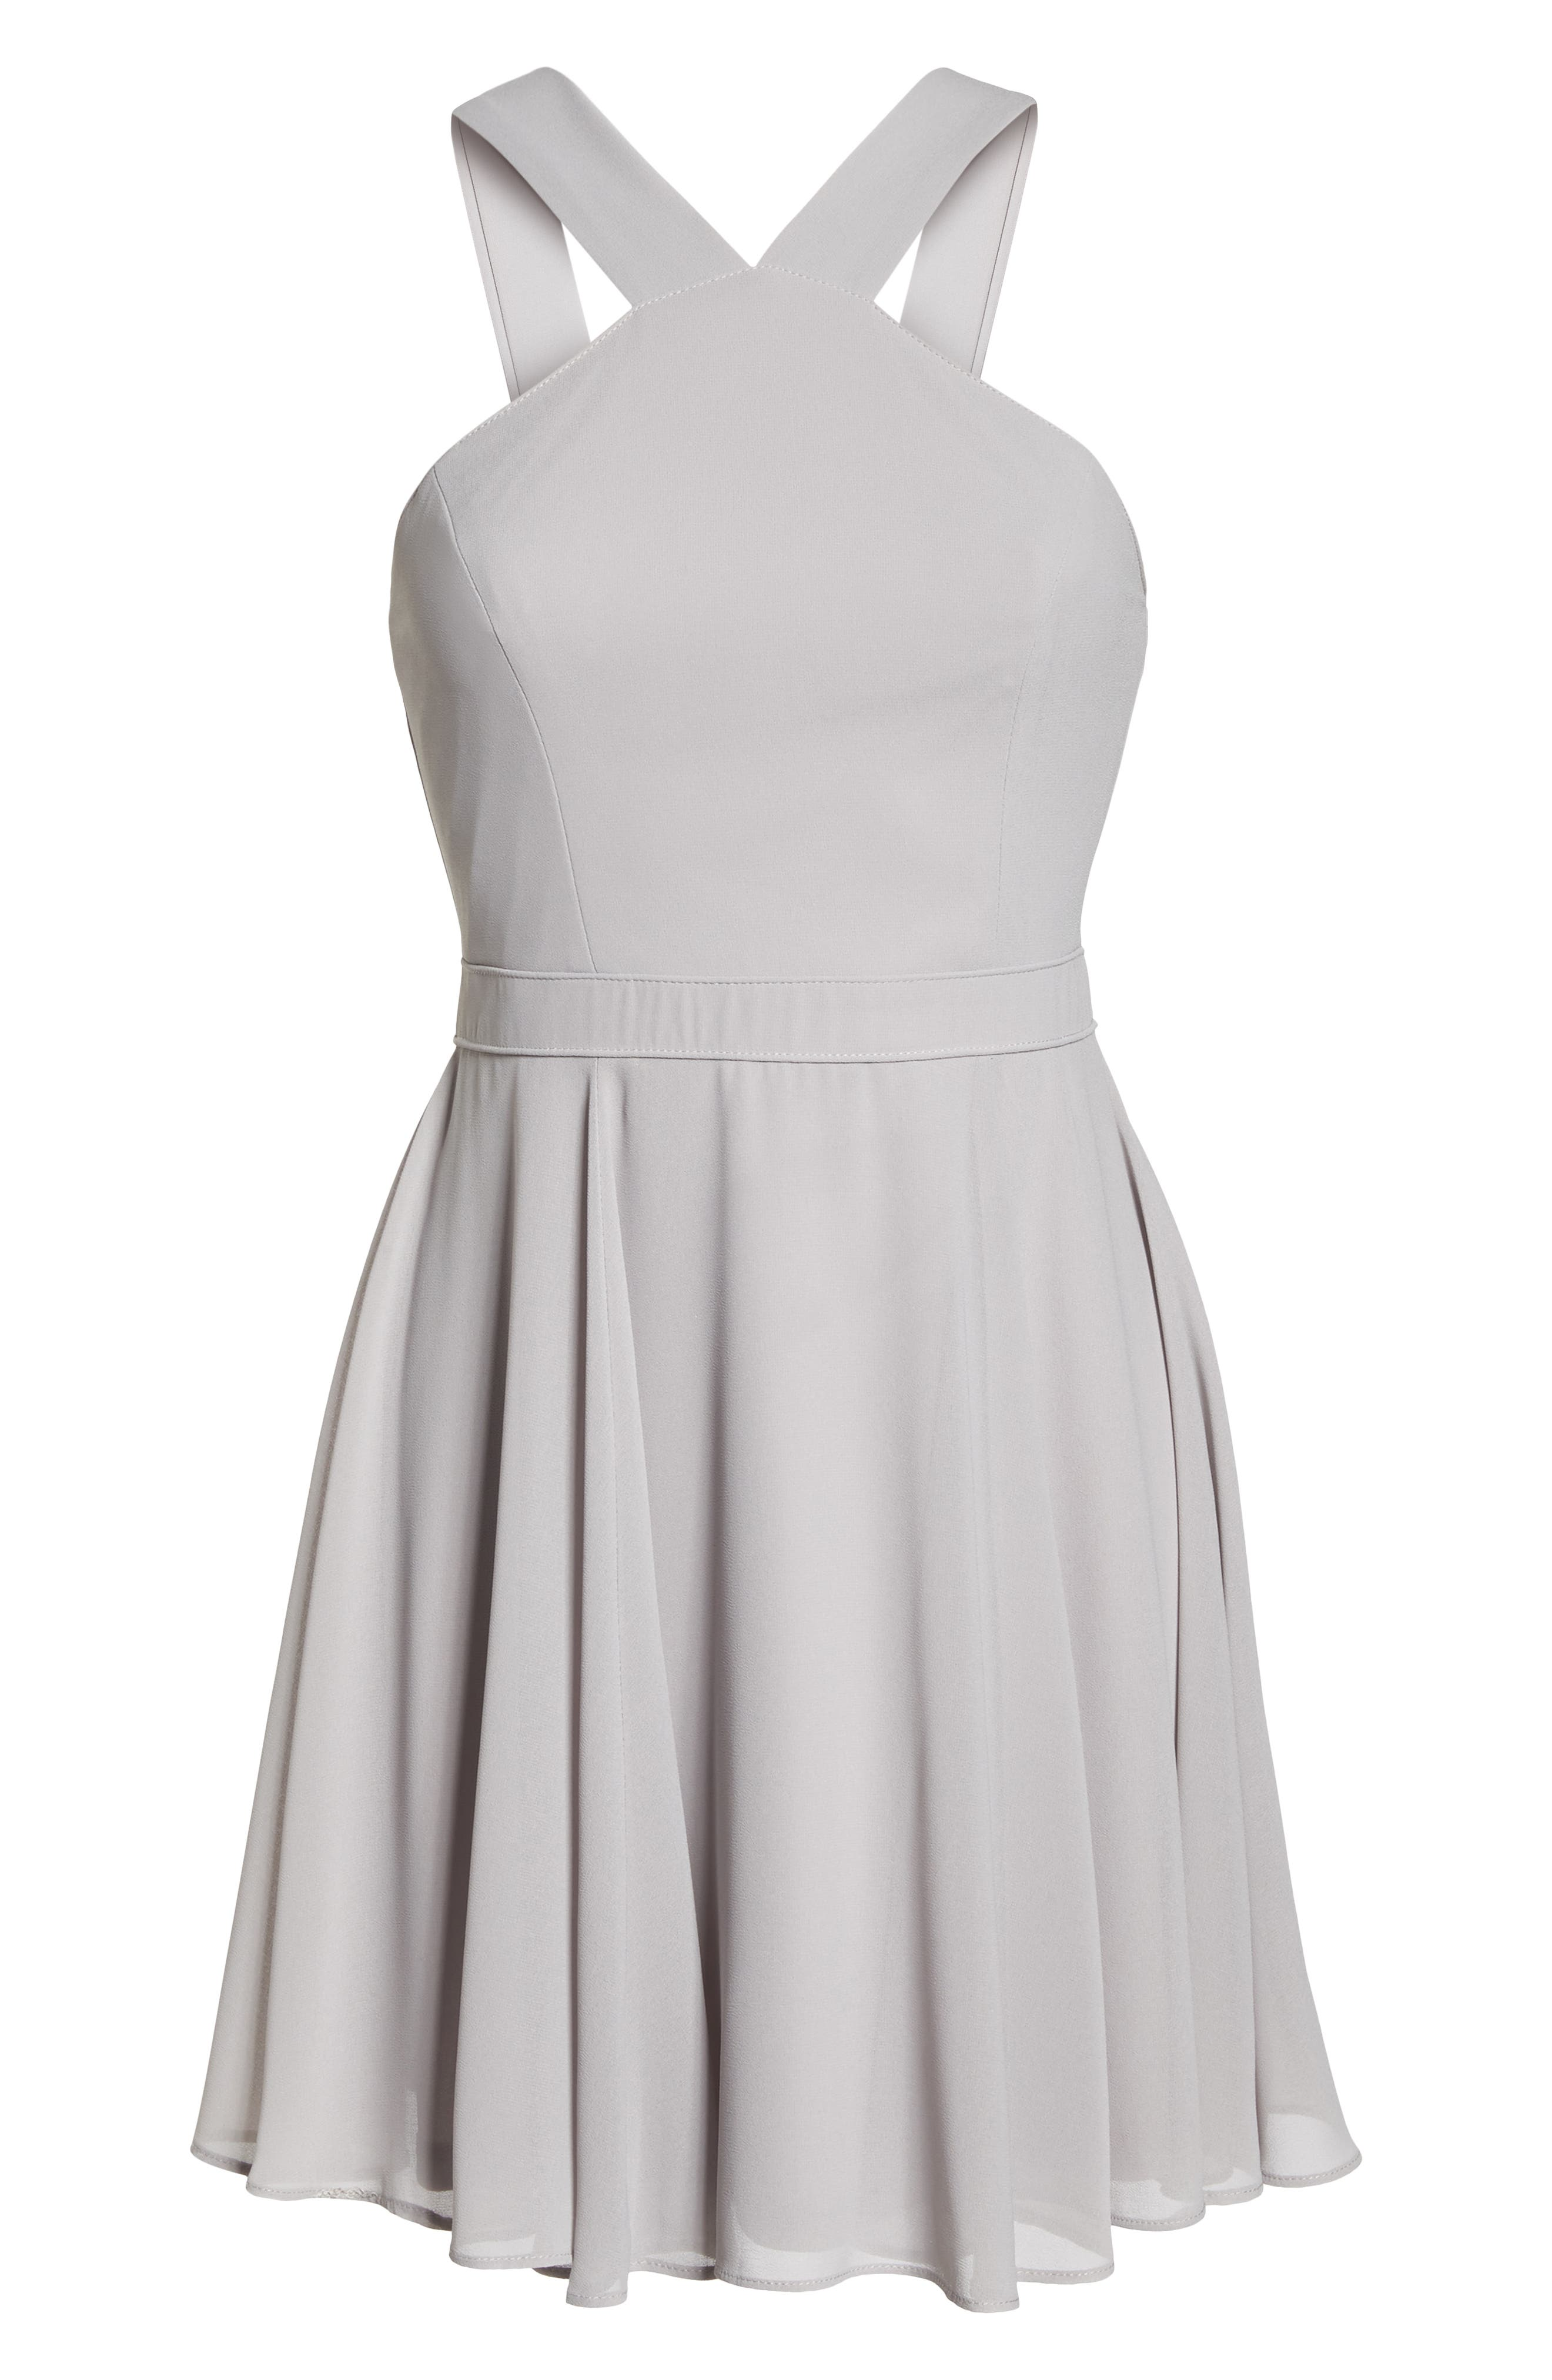 Forevermore Skater Dress,                             Alternate thumbnail 7, color,                             GREY